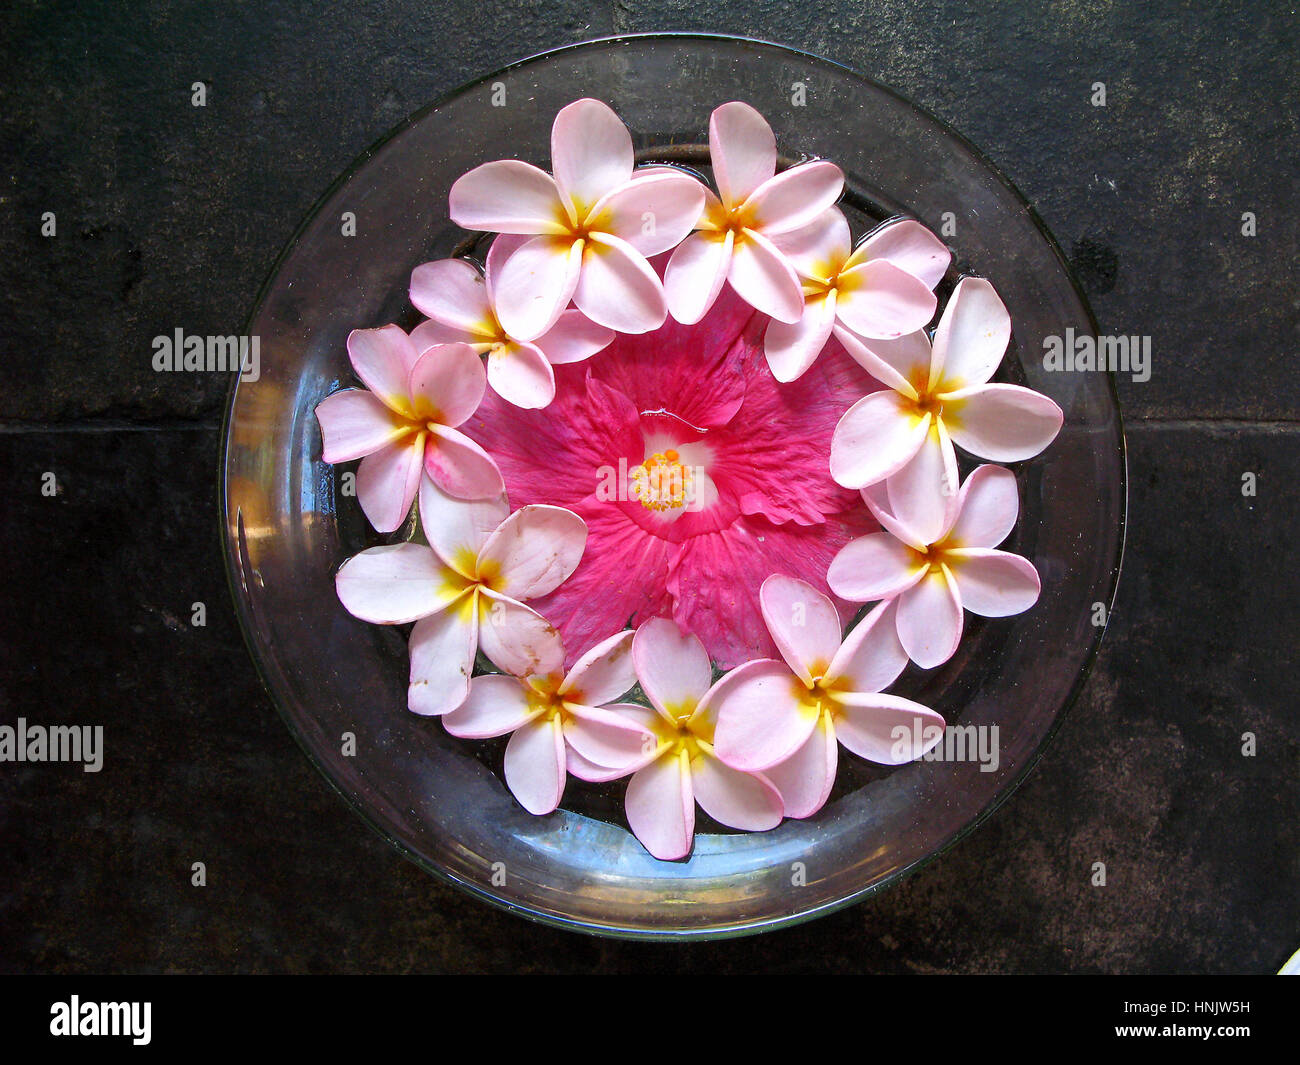 Wellness area blossom bowl with lotus flower rose and red colour wellness area blossom bowl with lotus flower rose and red colour oberoi luxushotel mauritius spa dish with blossoms the oberoi izmirmasajfo Gallery